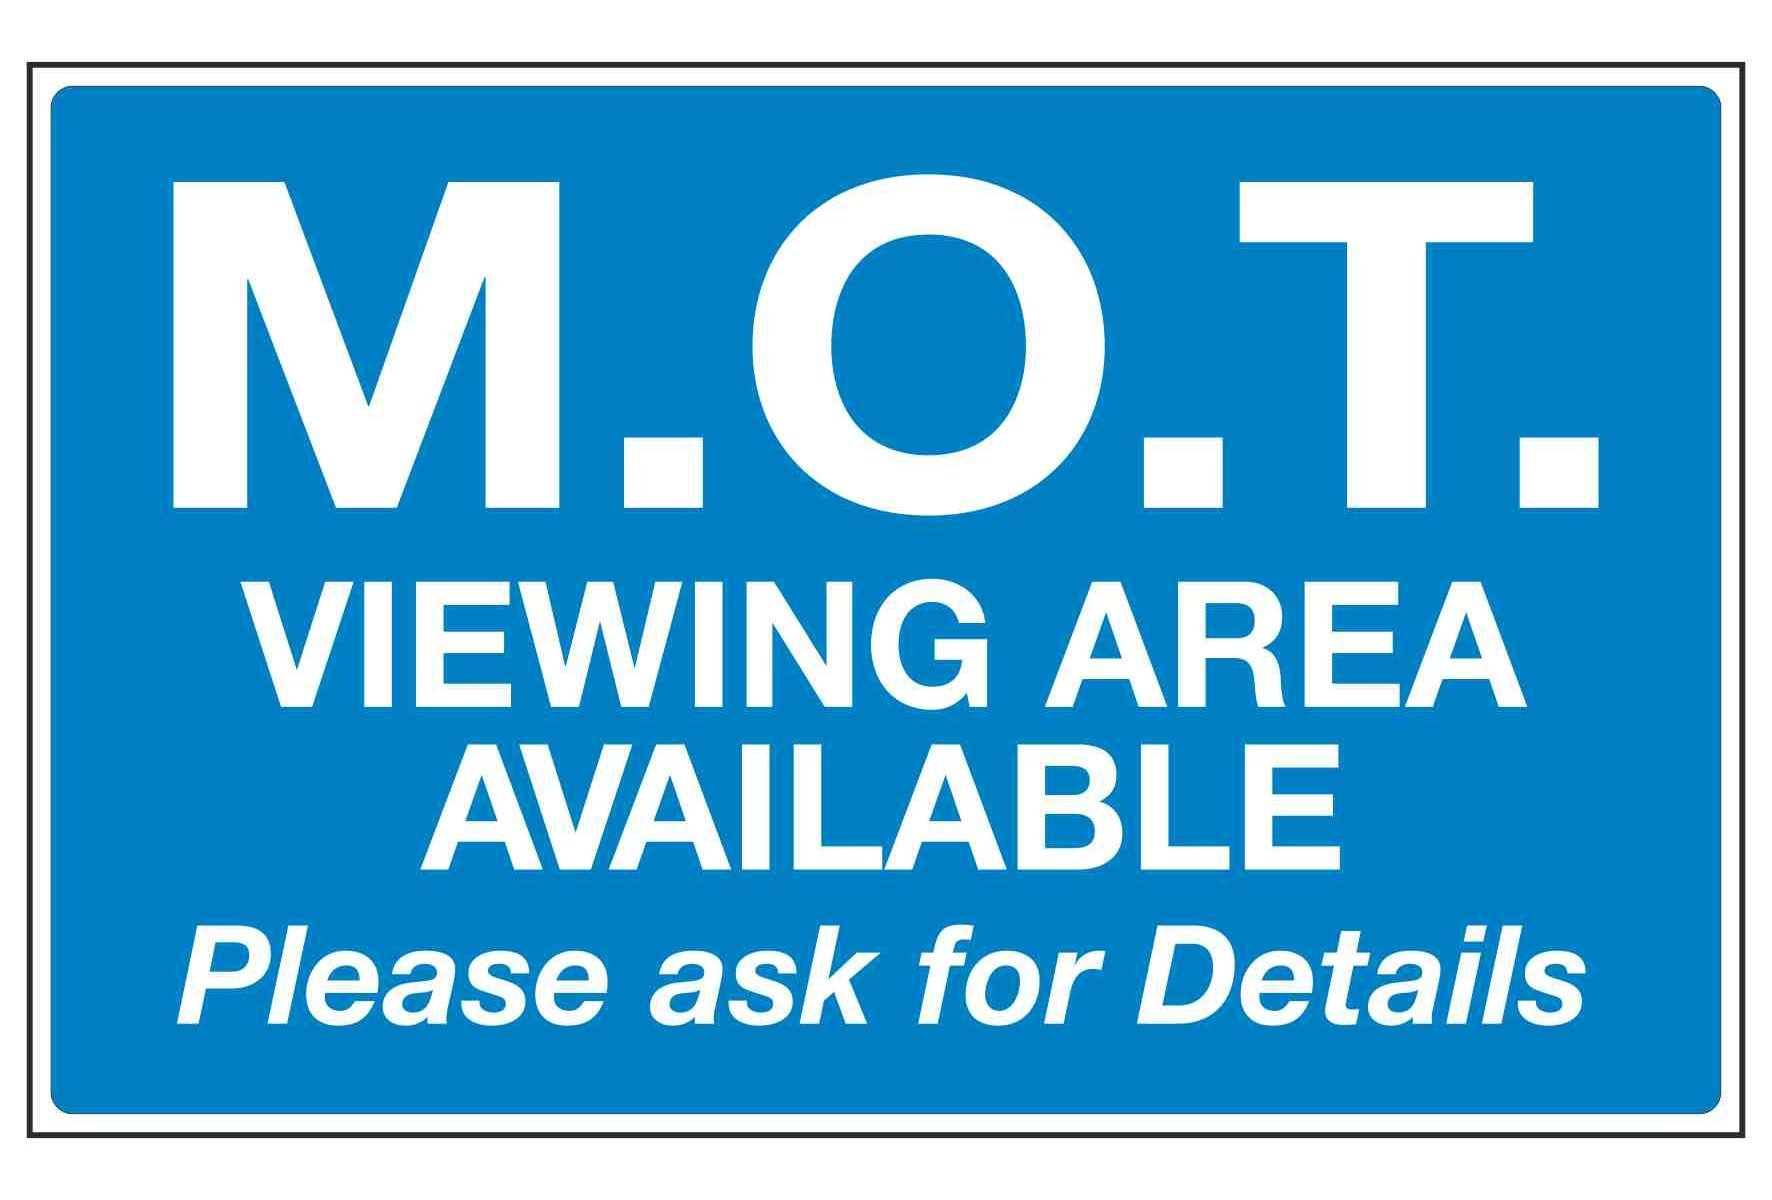 M.O.T VIEWING AREA AVAILABLE Please ask for Details